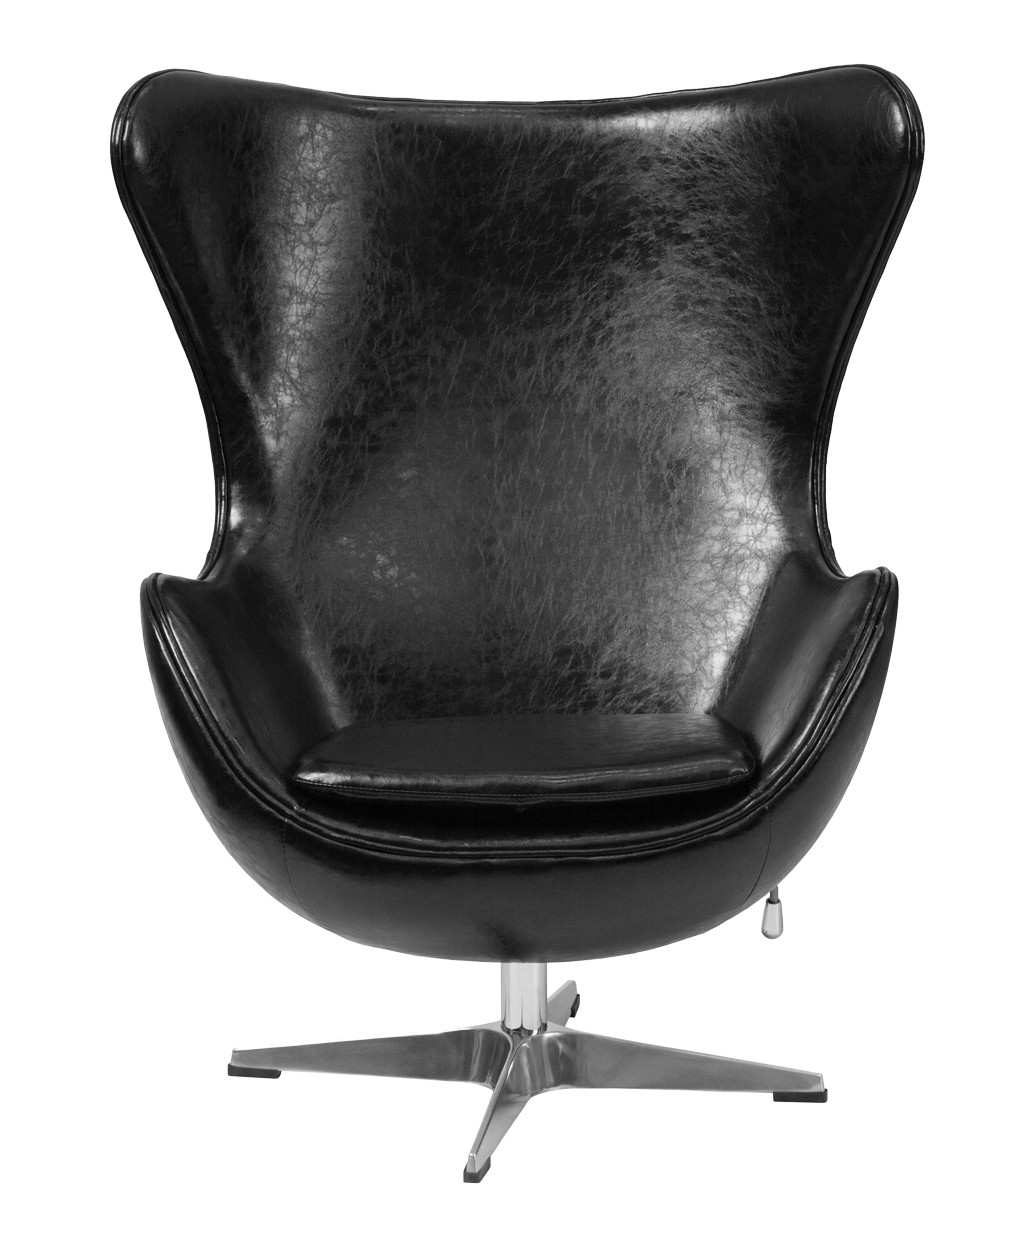 Egg Chair Prices Black Leather Egg Chair With Tilt Lock Mechanism